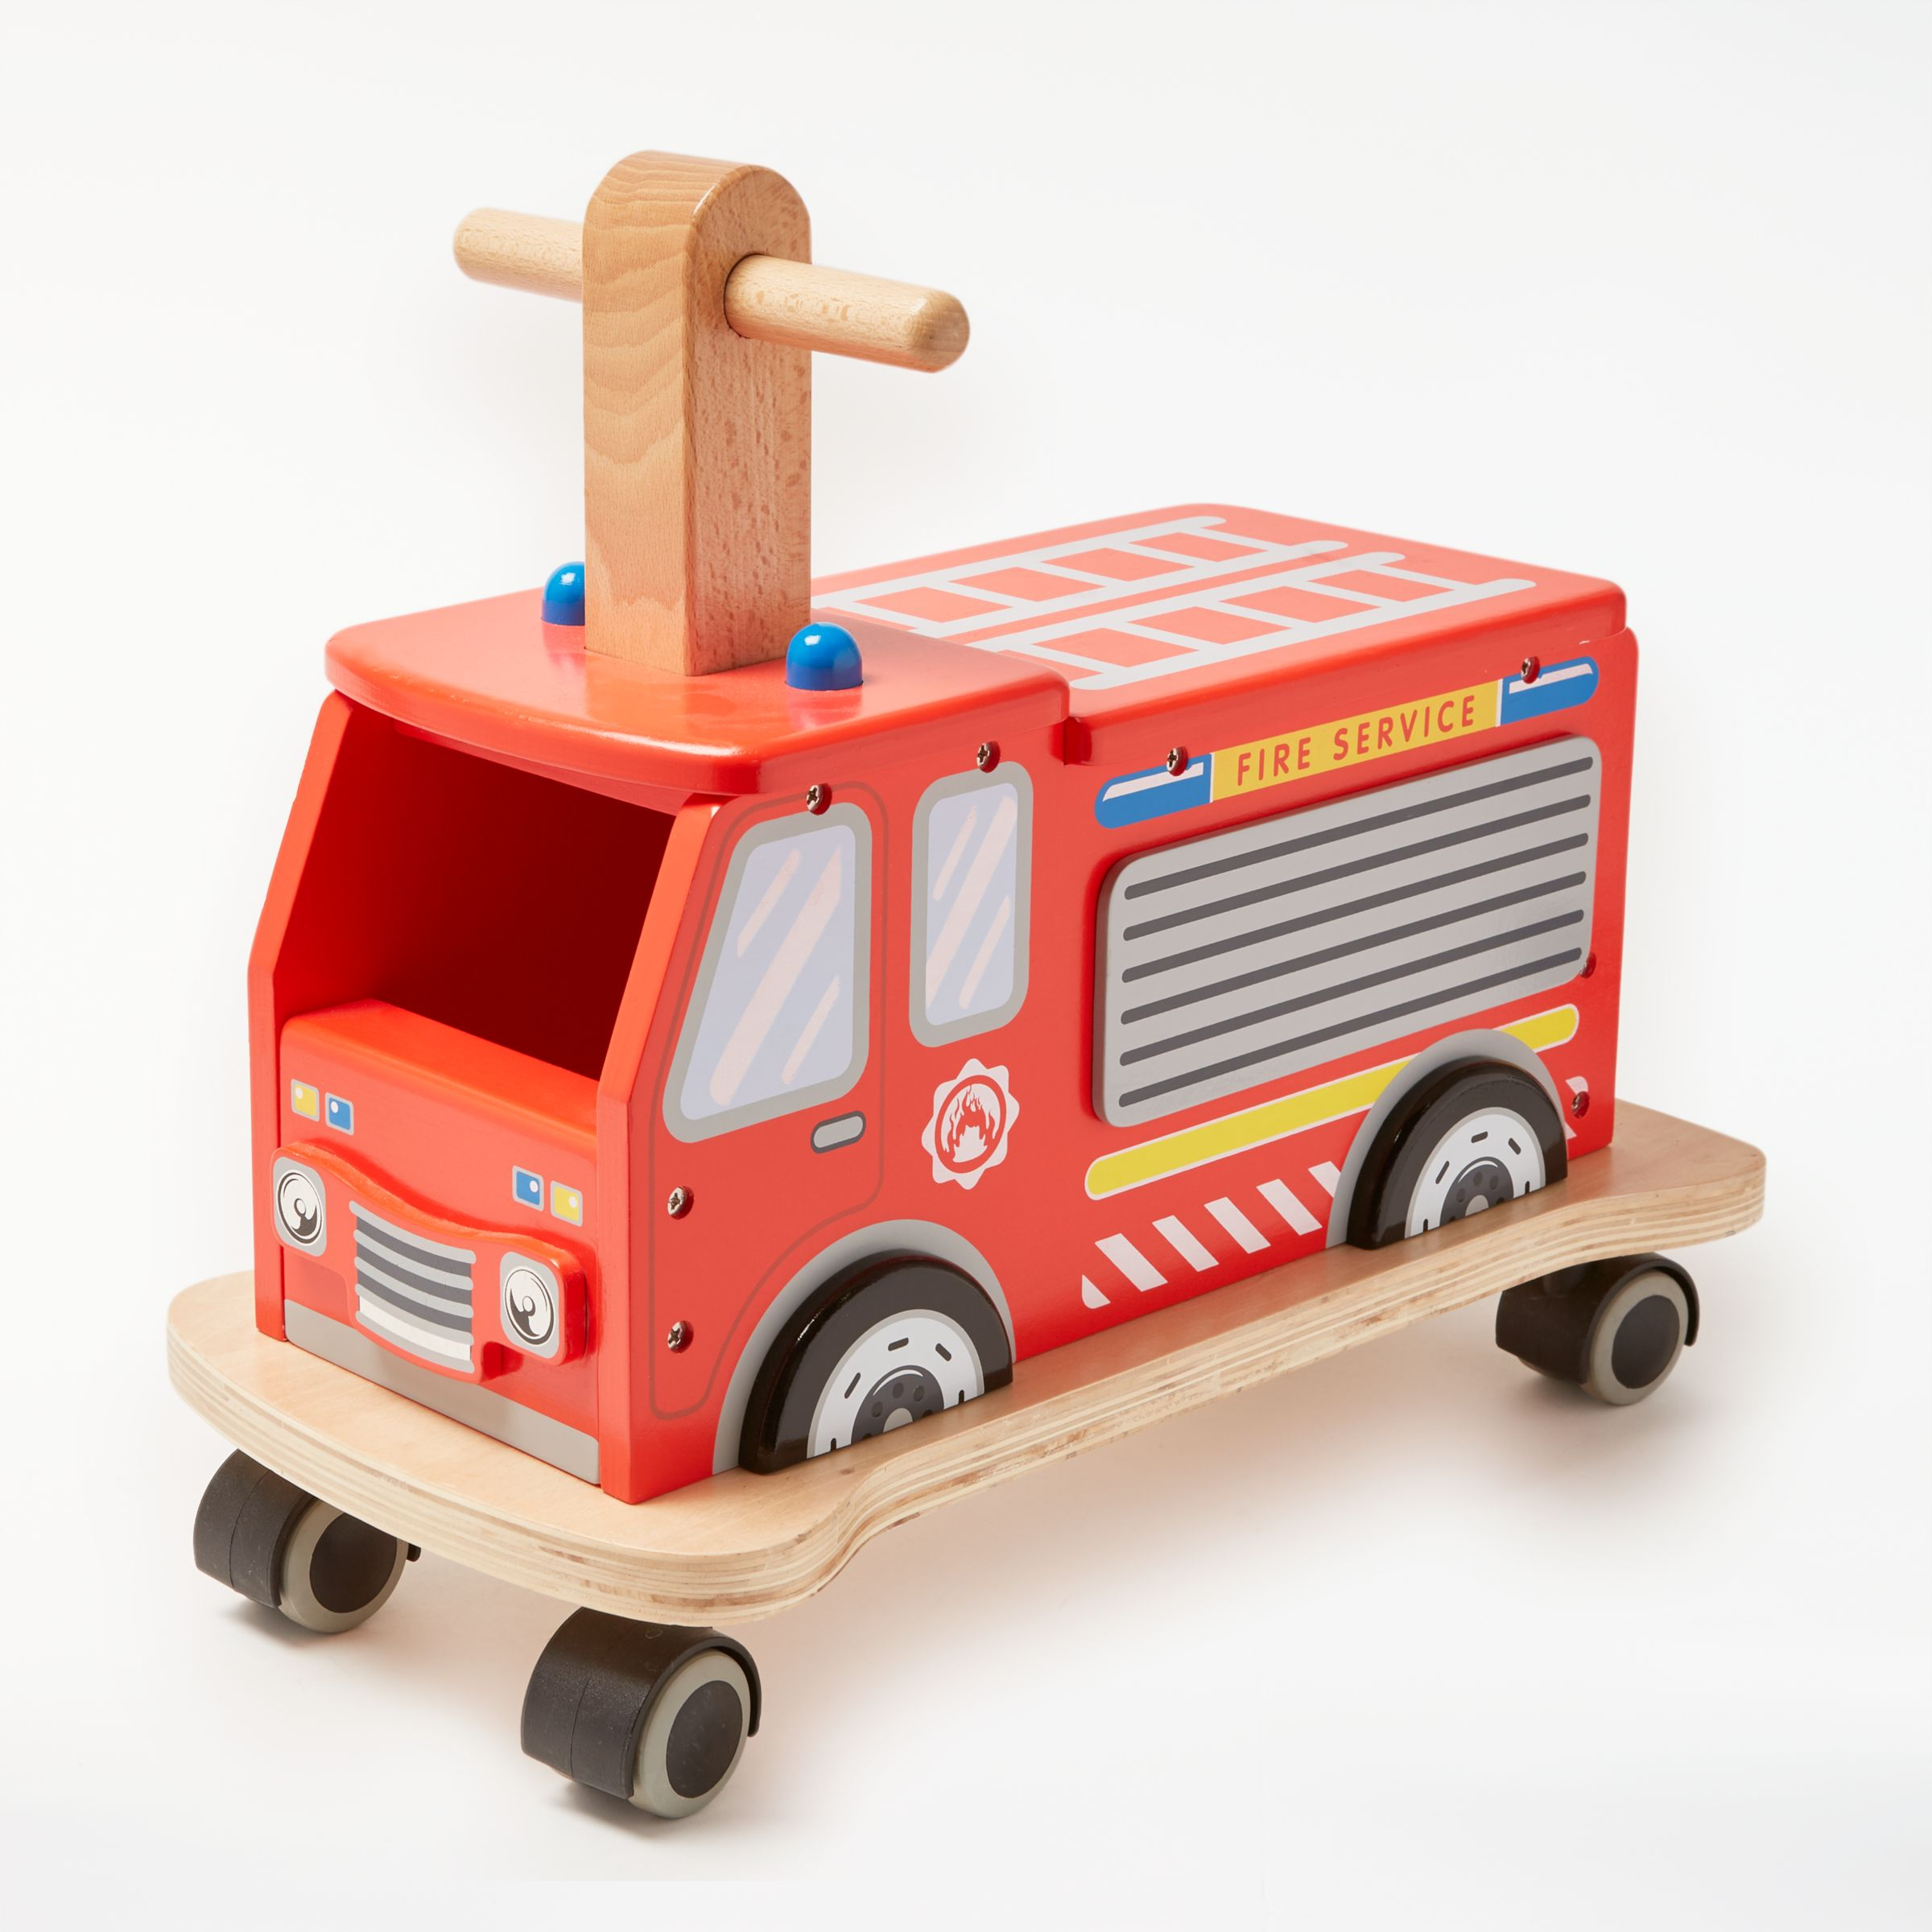 13d948bc97c19 John Lewis & Partners Fire Engine Ride On at John Lewis & Partners